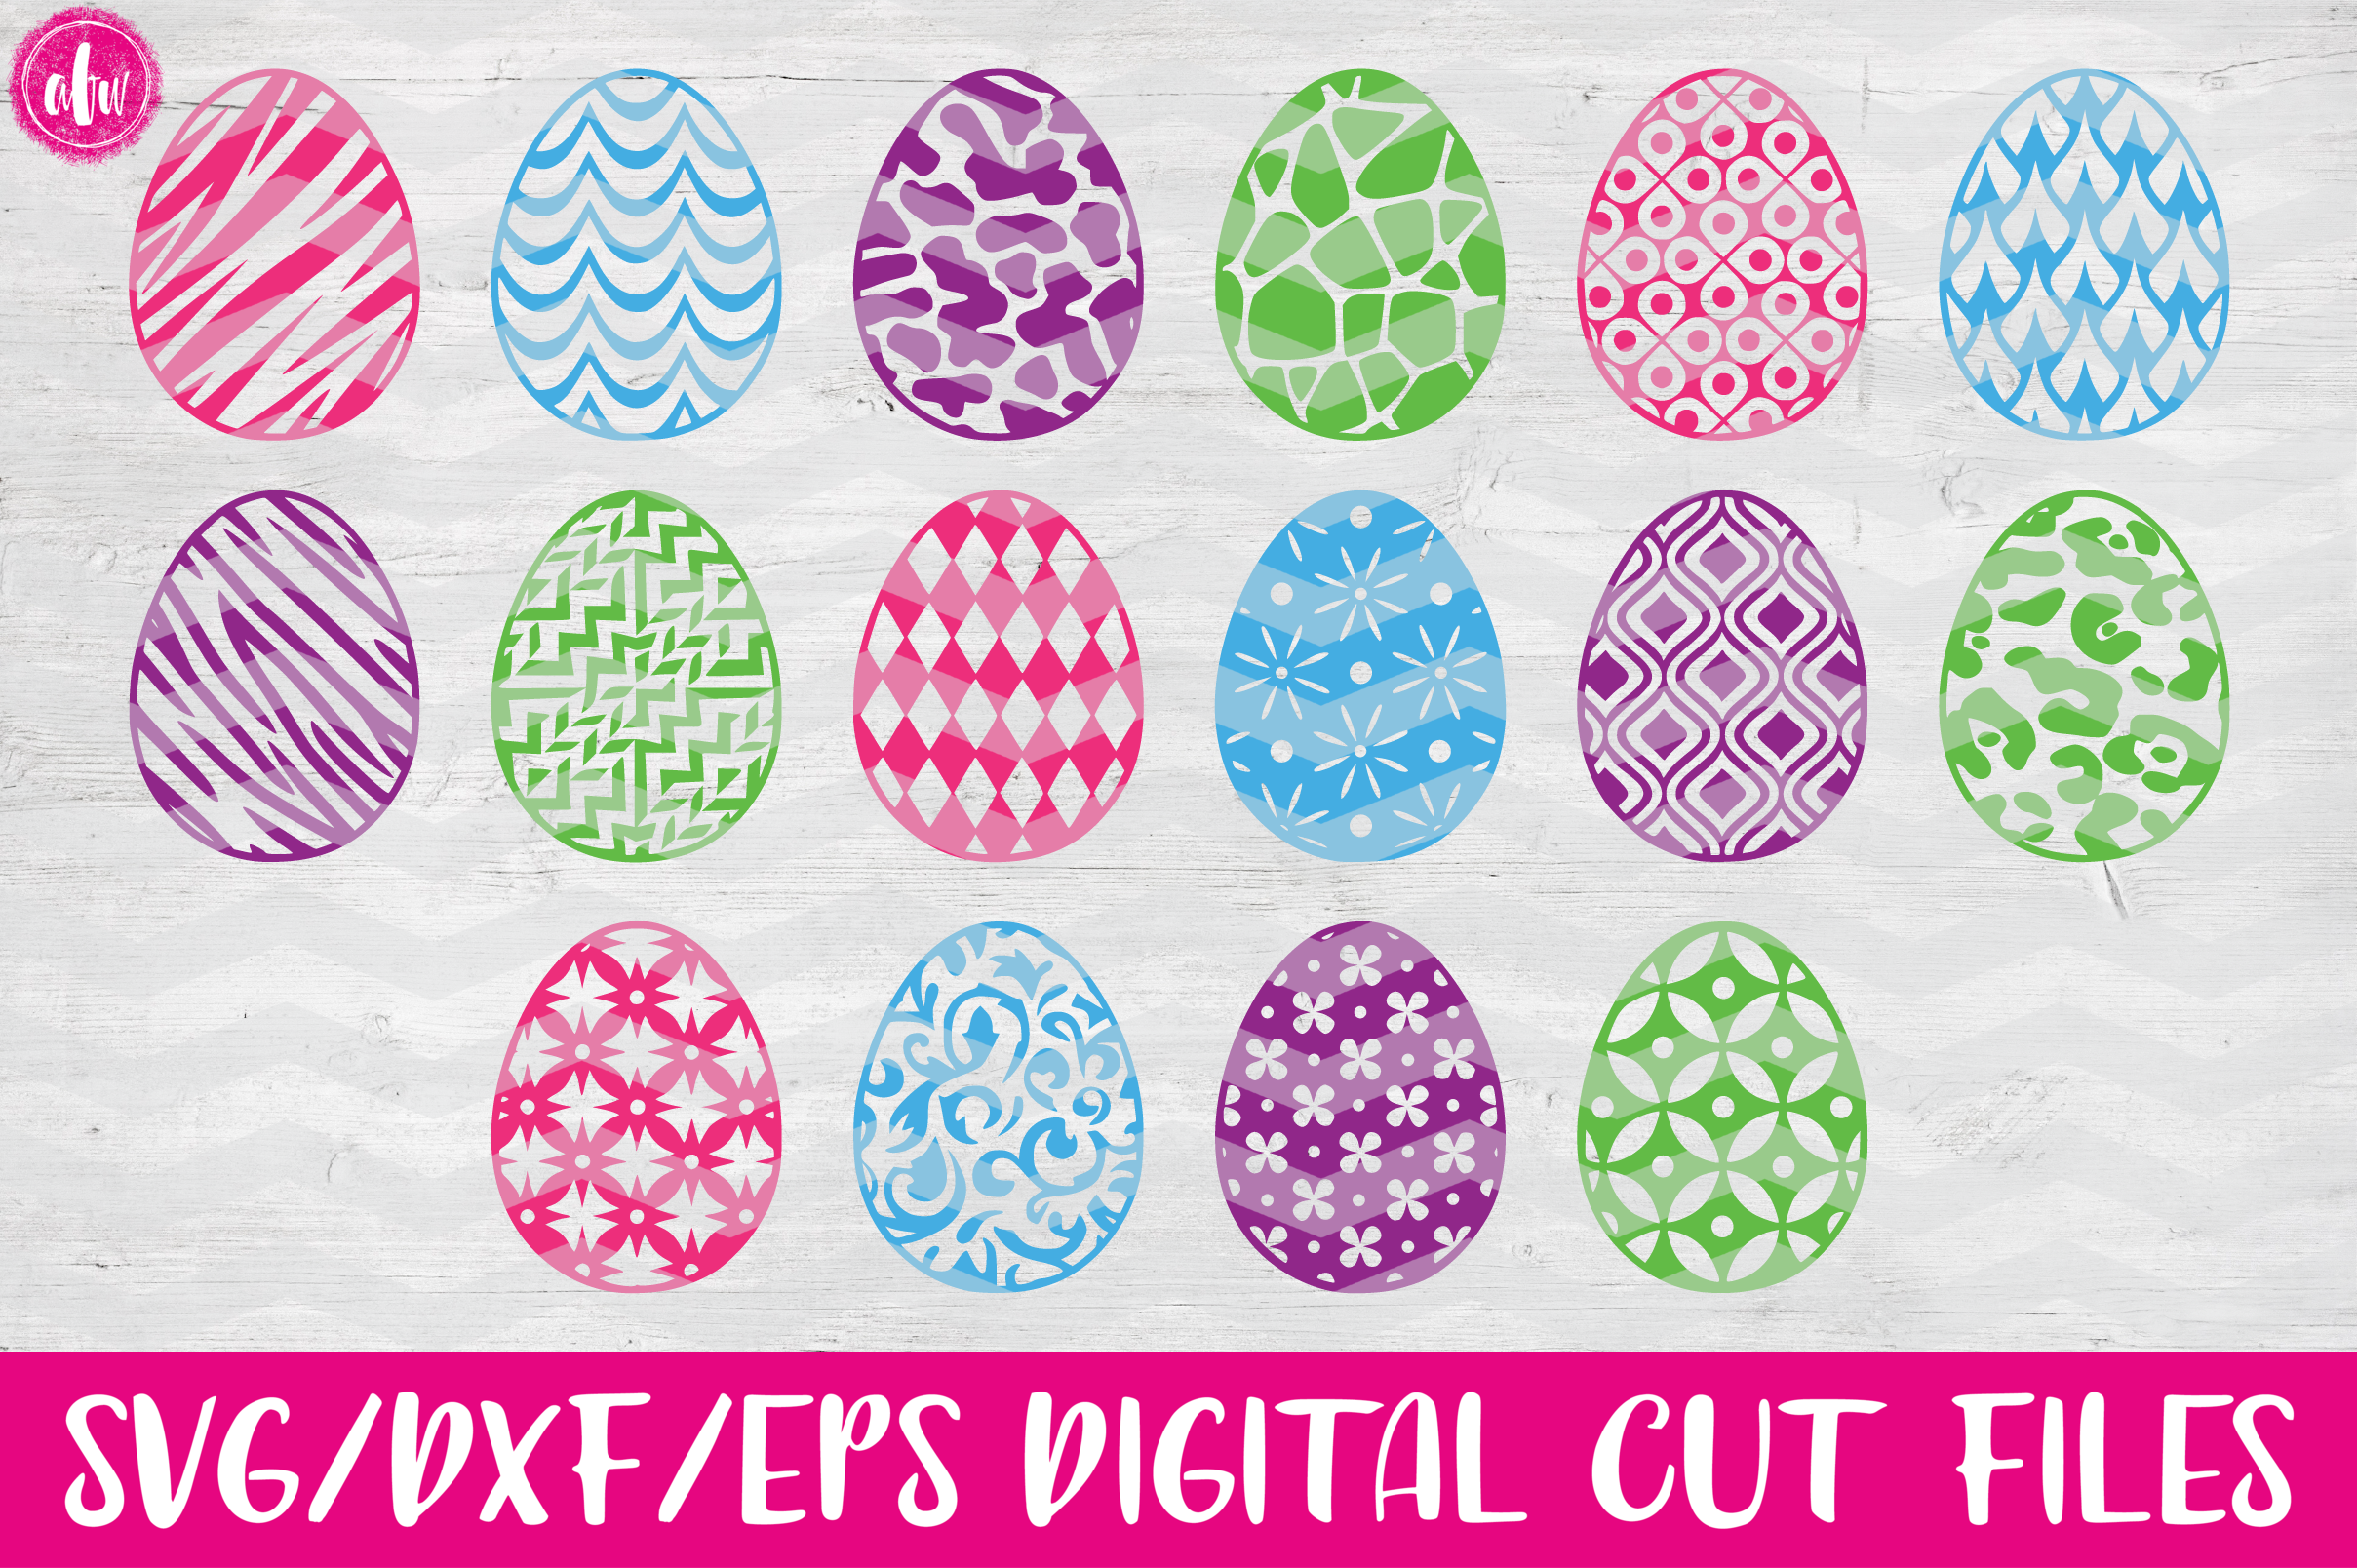 Pattern Easter Eggs Set of 40 - SVG, DXF, EPS Cut Files example image 2